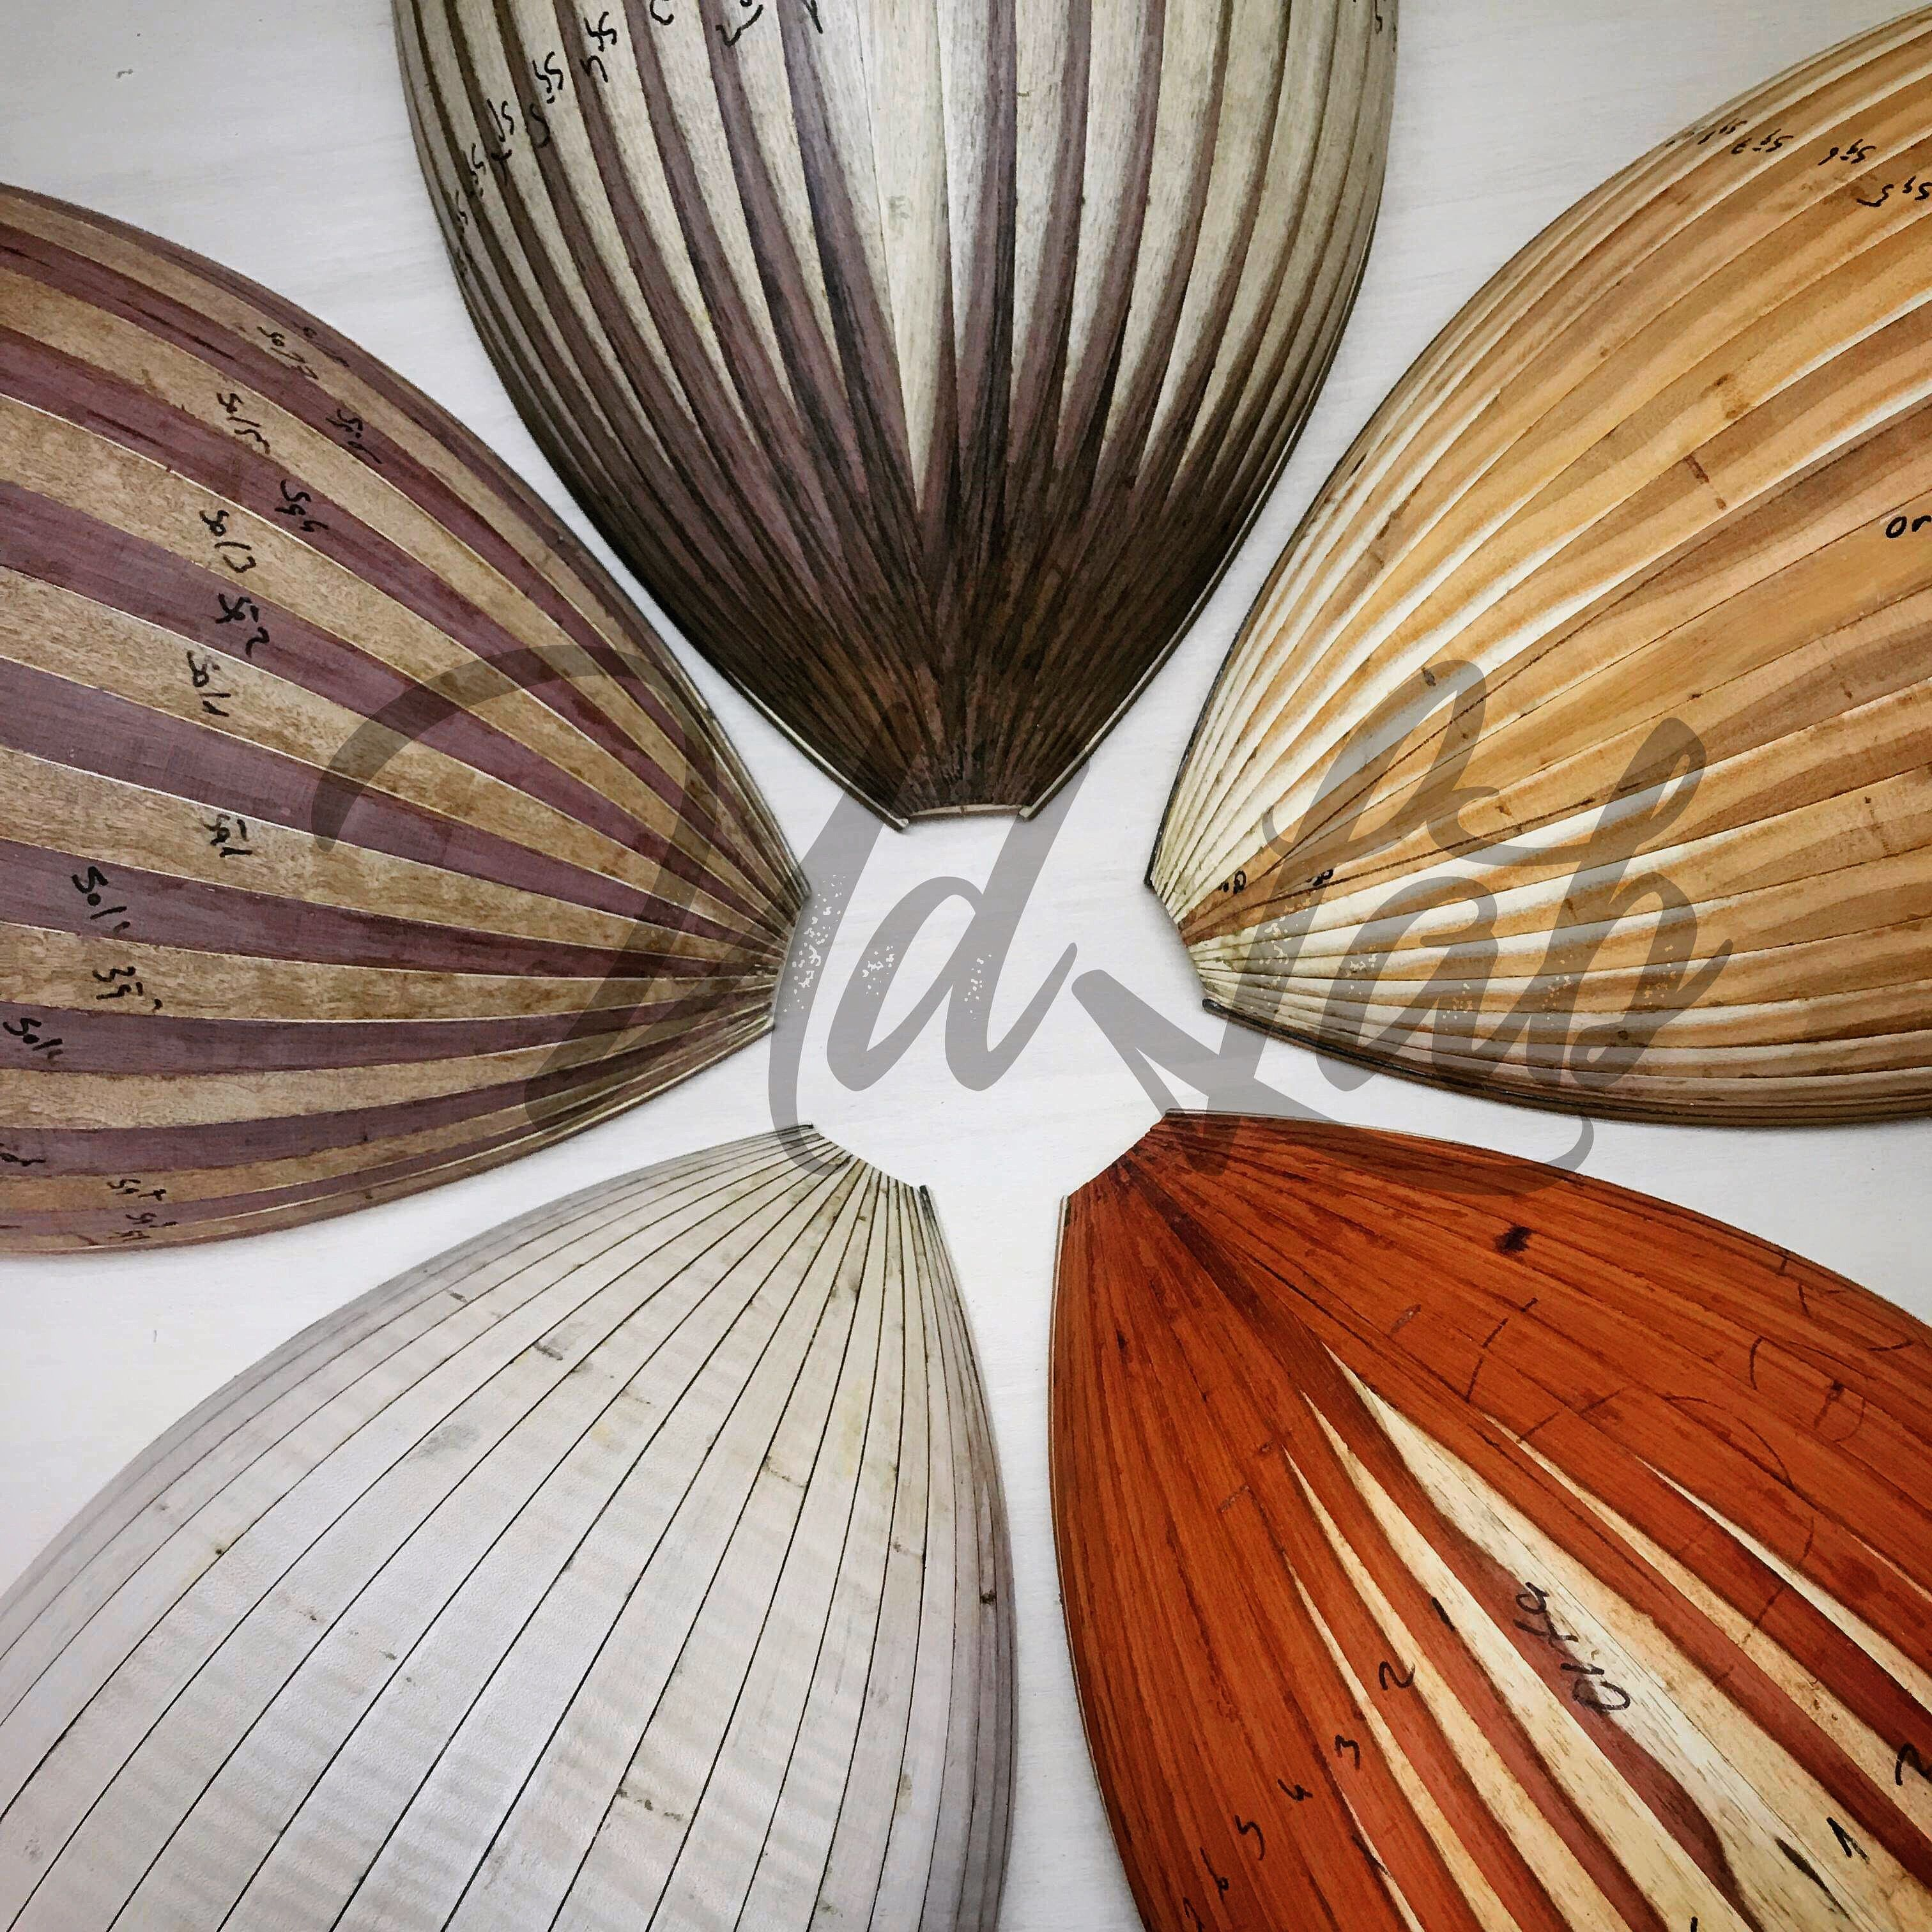 Bowed Psaltery Music Teach Yourself To Play Music It 39 S Easy With A Bowed Psaltery Bowed Psaltery Teaching Music Going Home